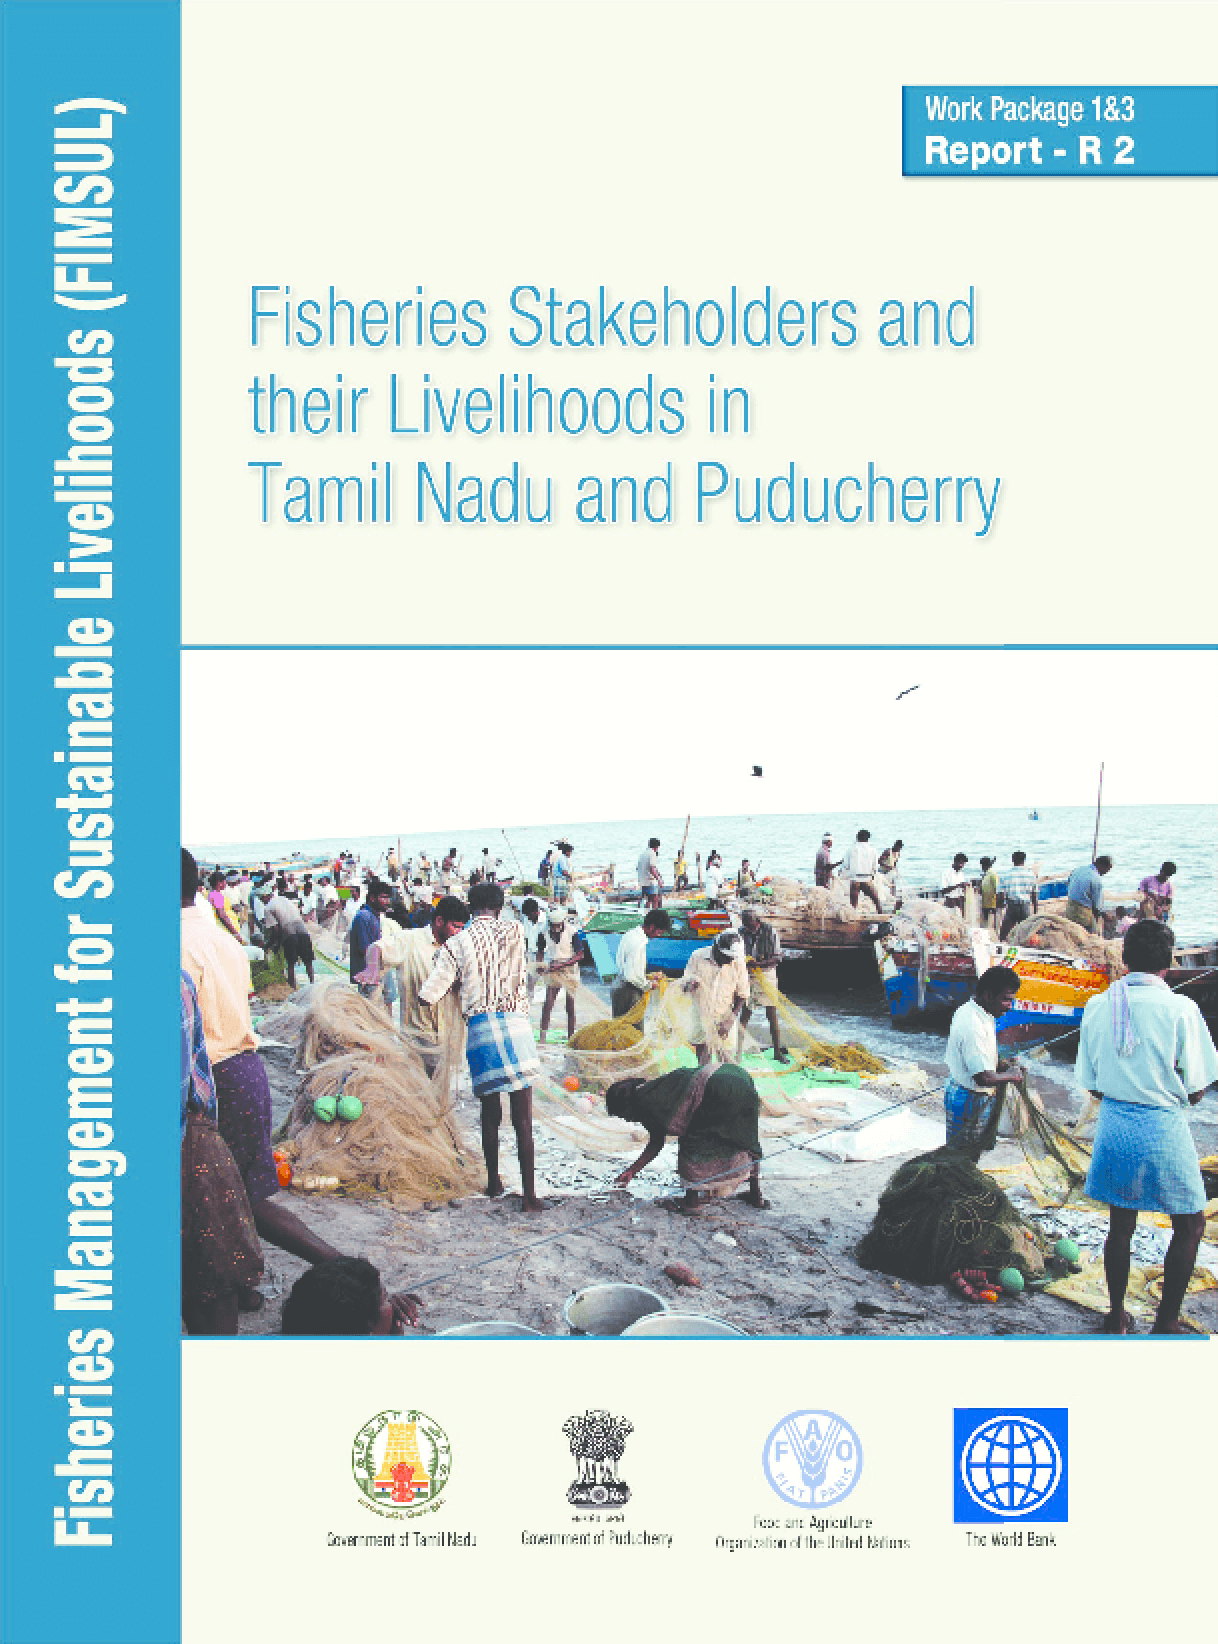 Fisheries Stakeholders and Their Livelihoods in Tamil Nadu and Puducherry